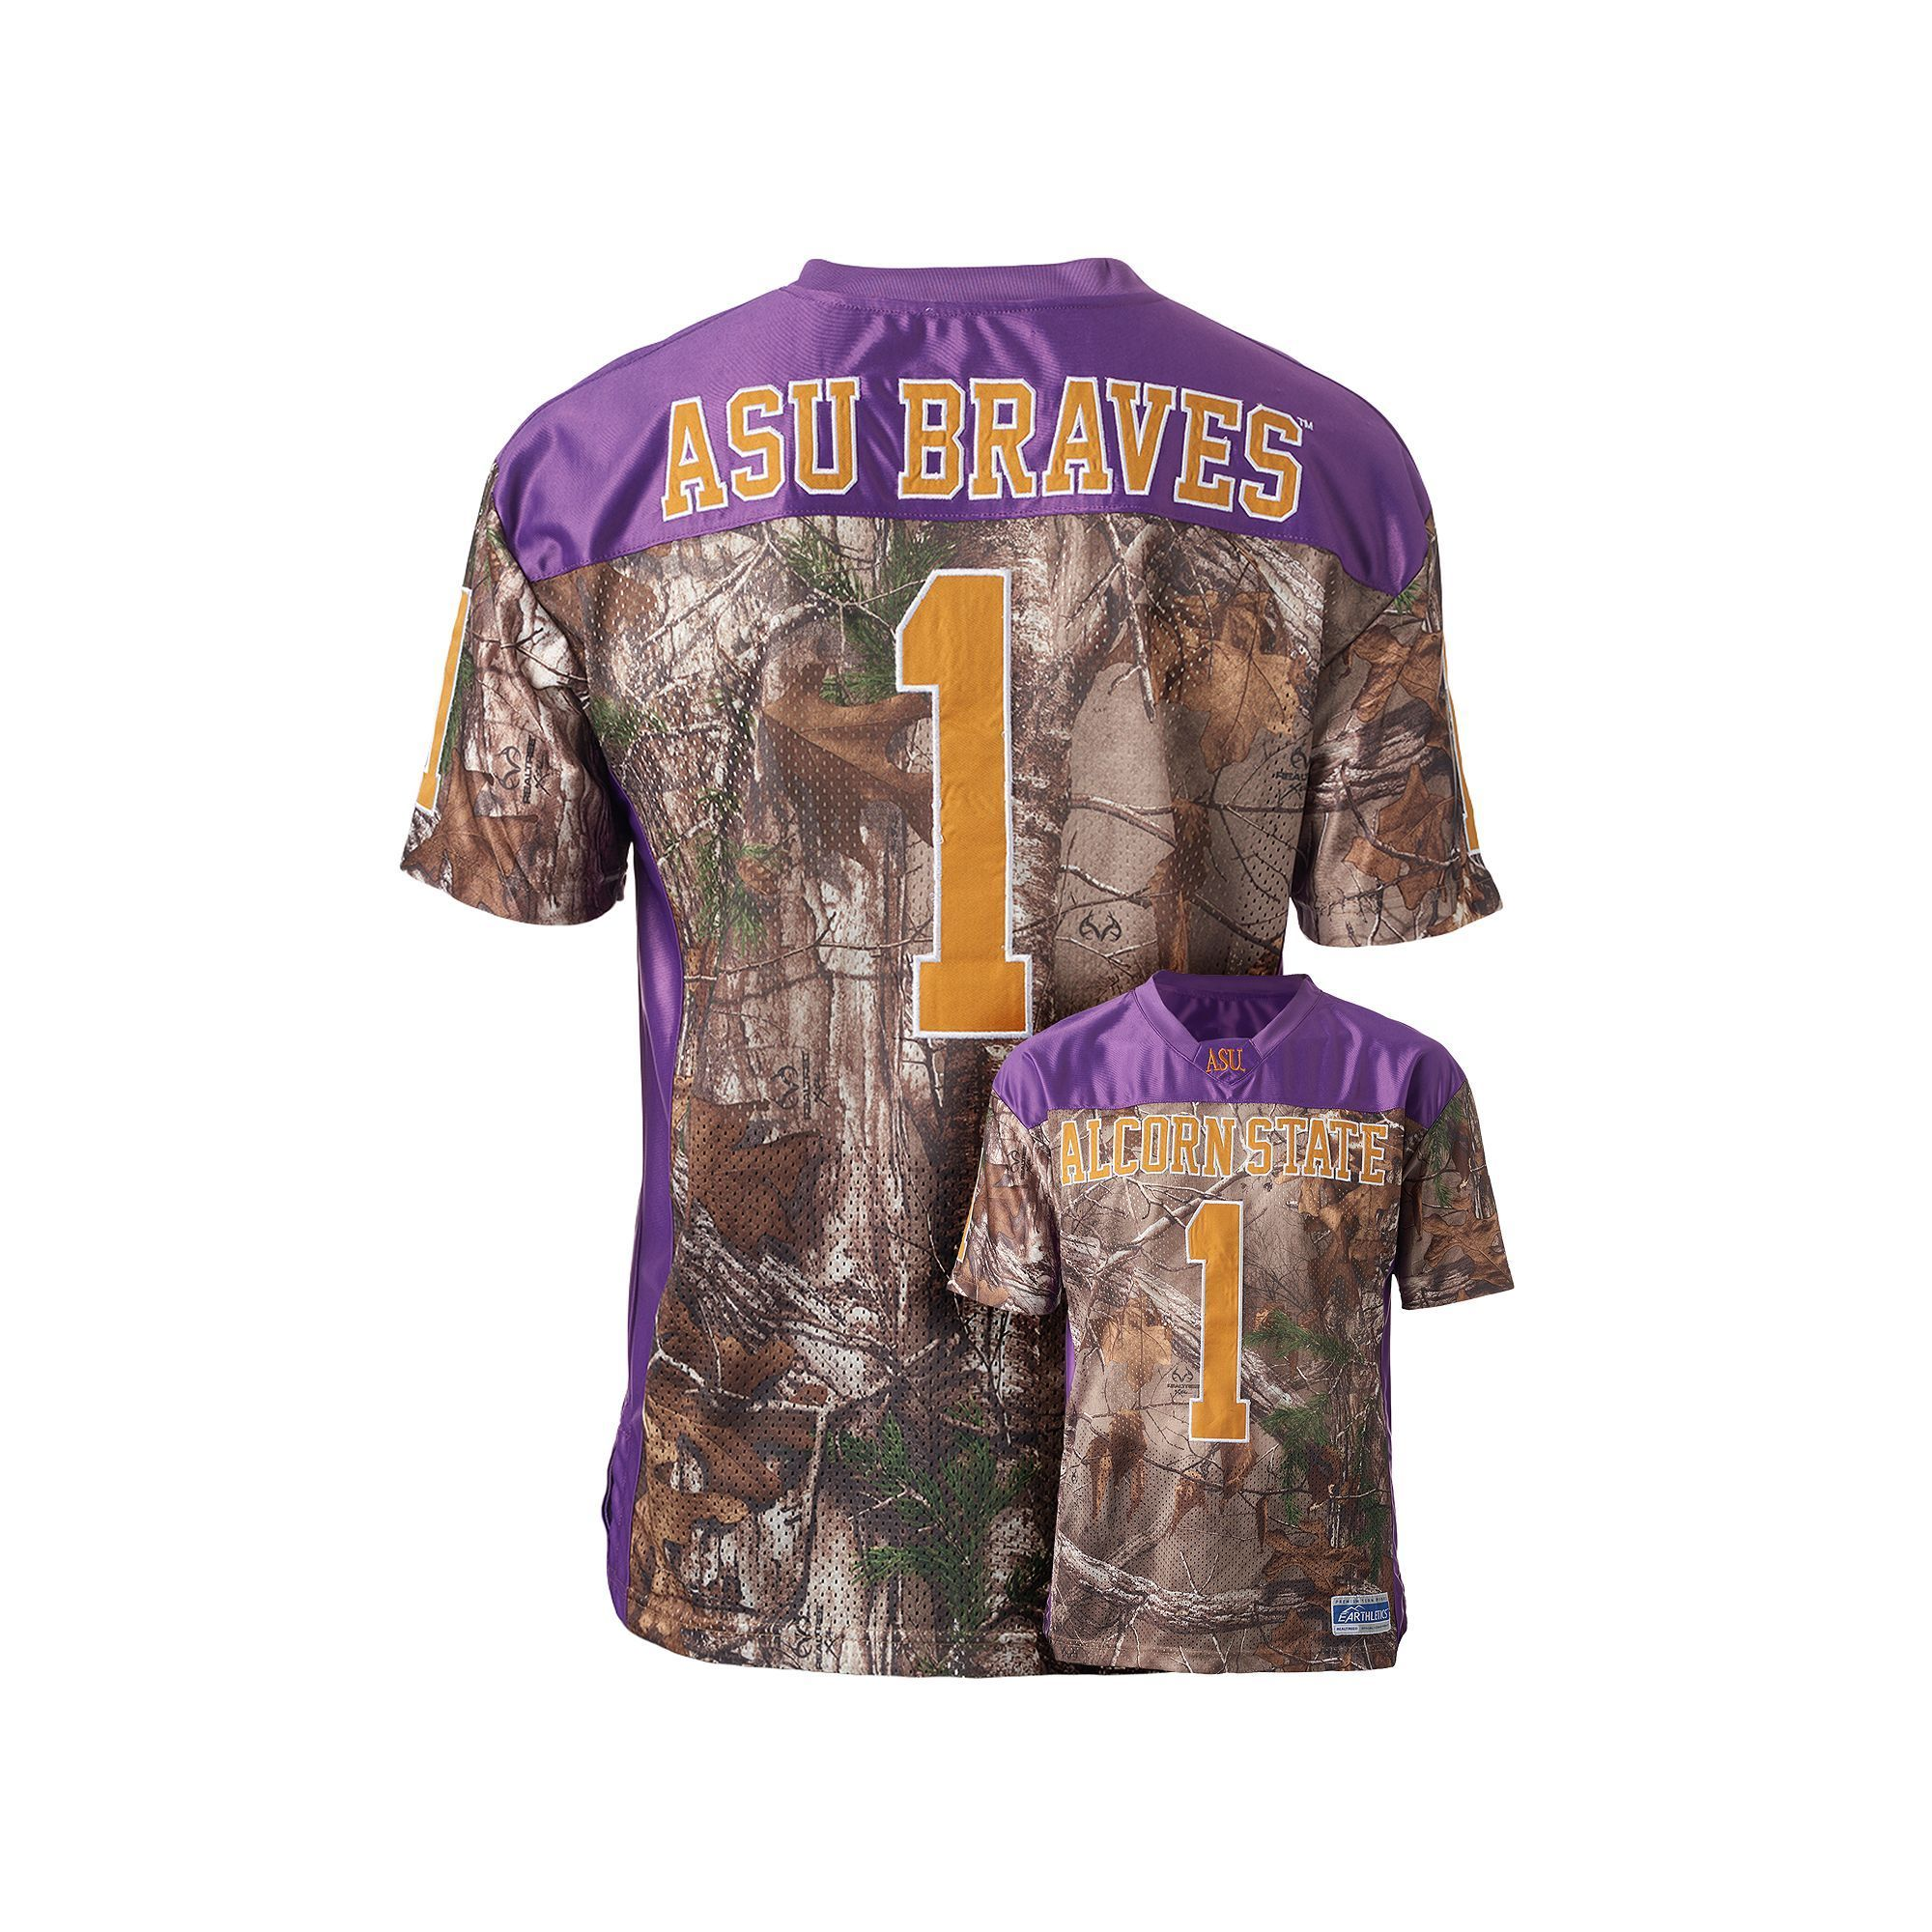 finest selection 60379 703f0 Men's Alcorn State Braves Game Day Realtree Camo Jersey ...